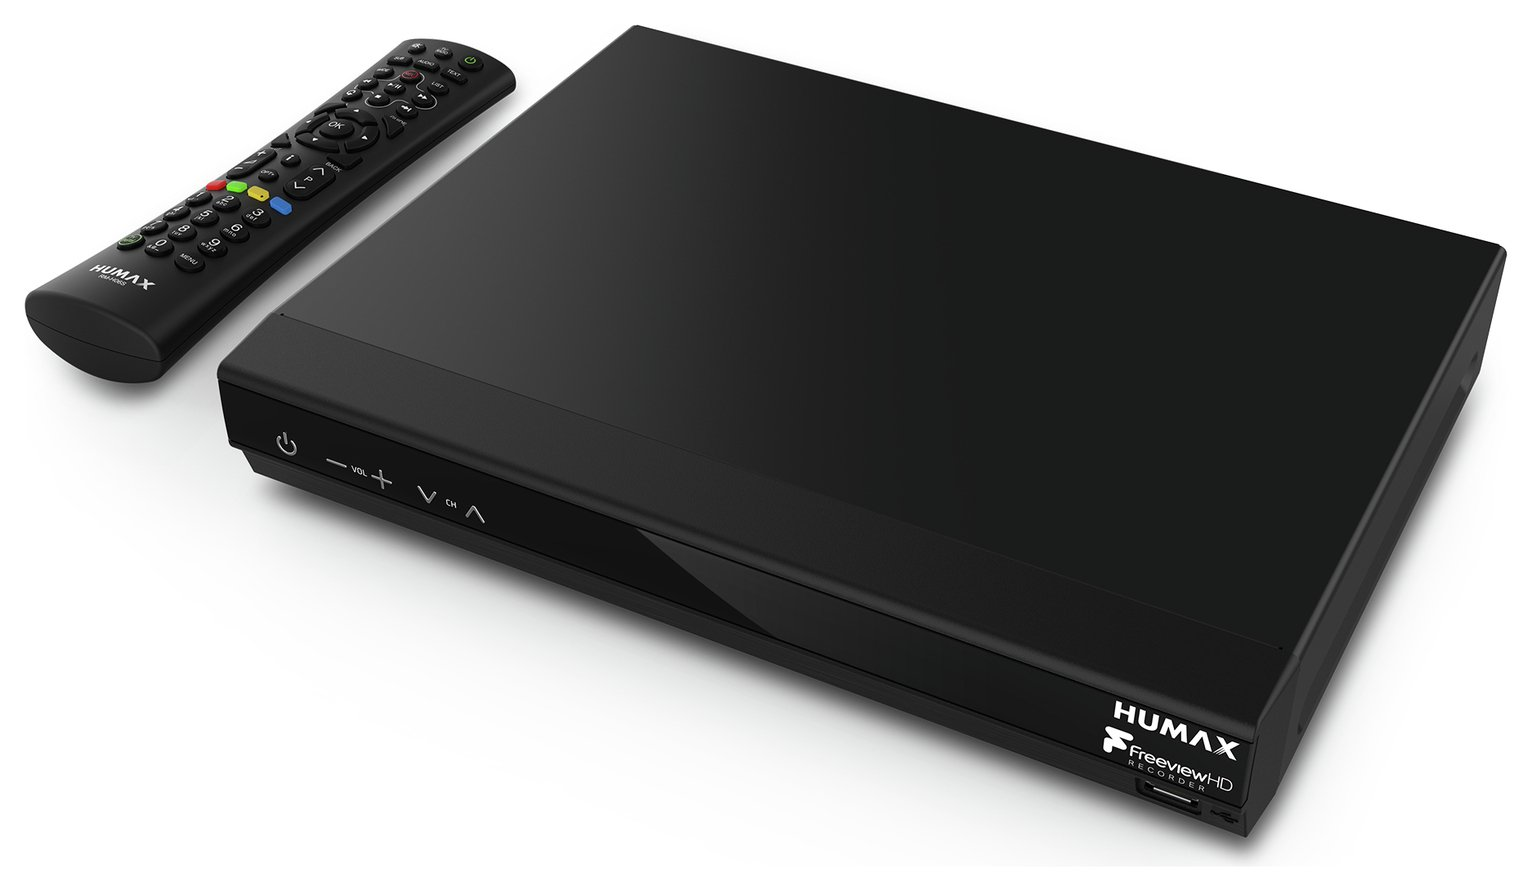 Humax Freeview HDR-1800T 500GB Freeview+ HD Recorder